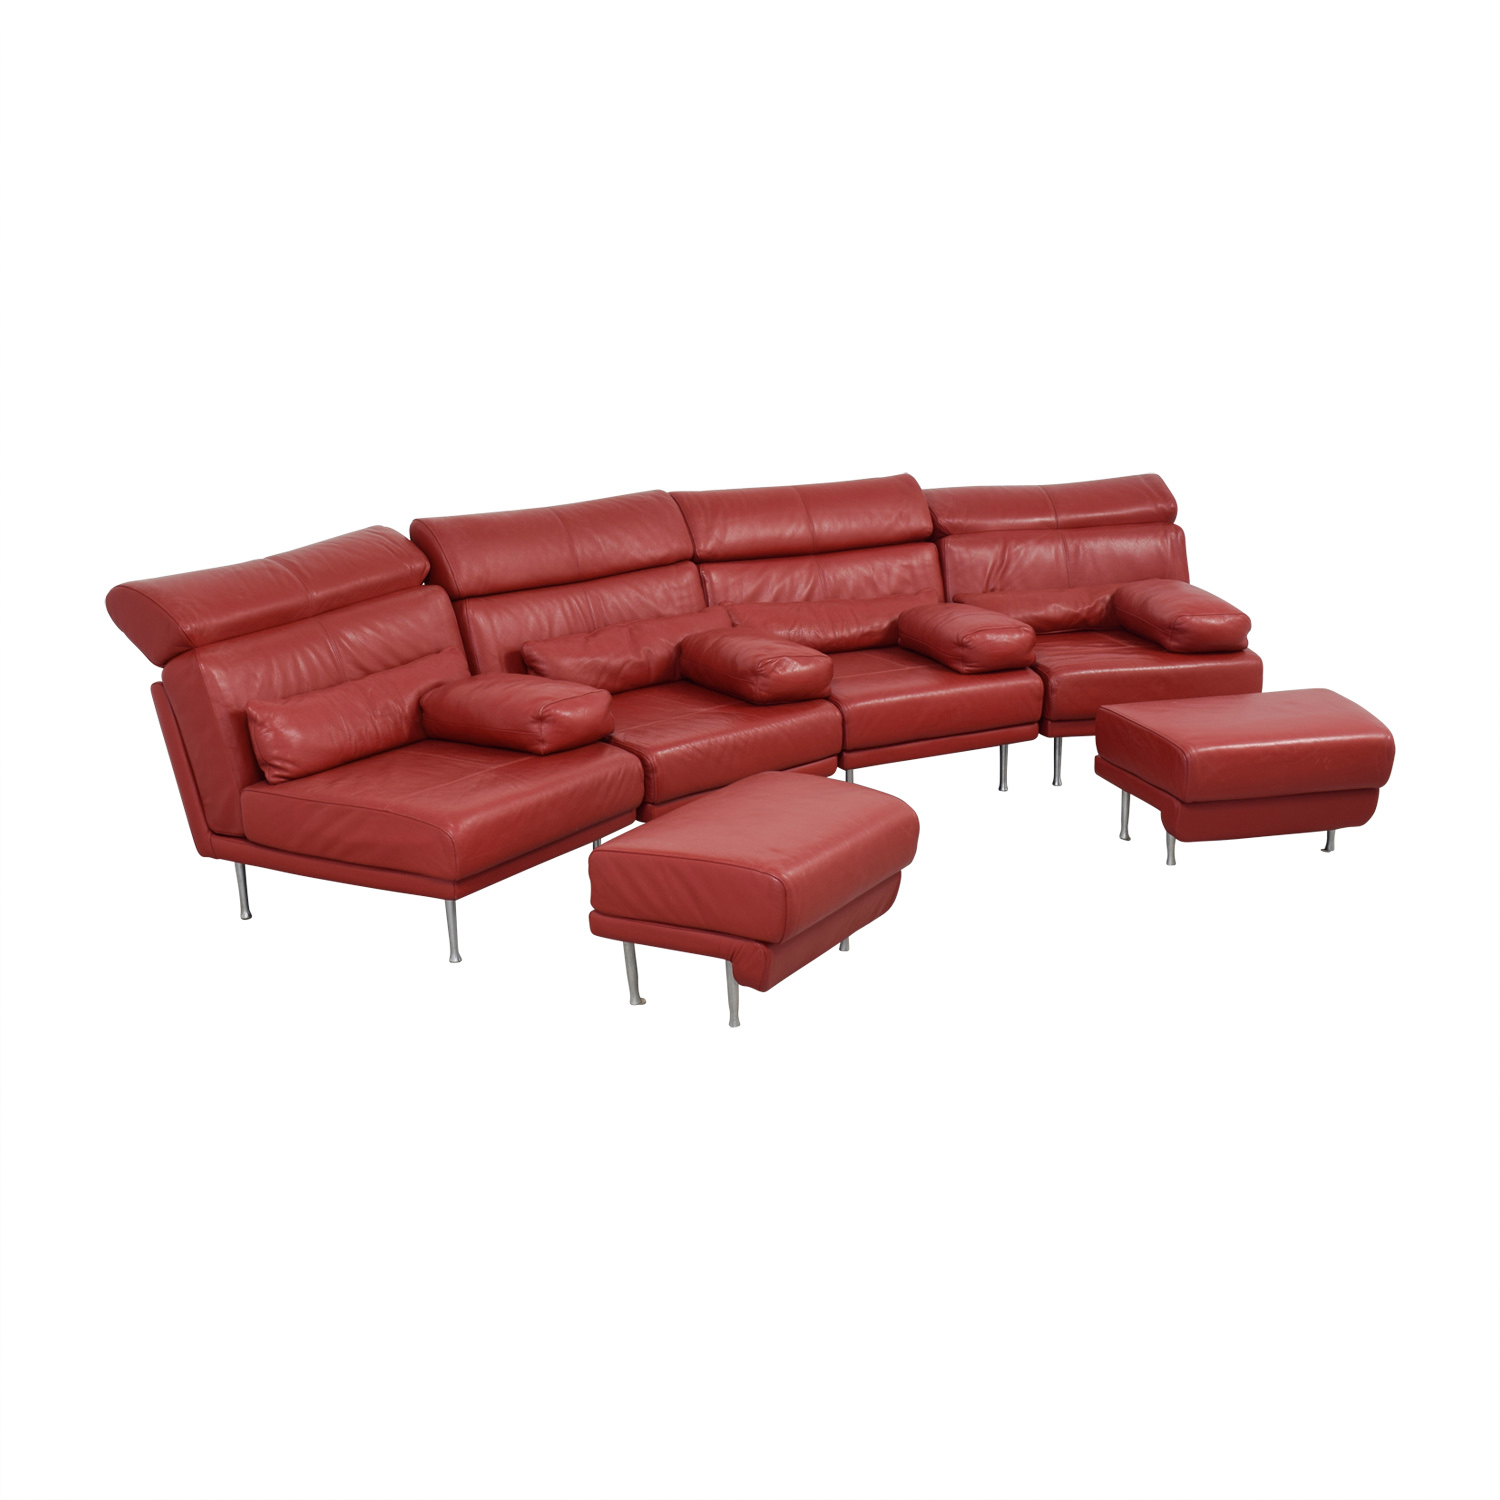 Natuzzi Red Leather Sectional With Two Ottomans Sectionals